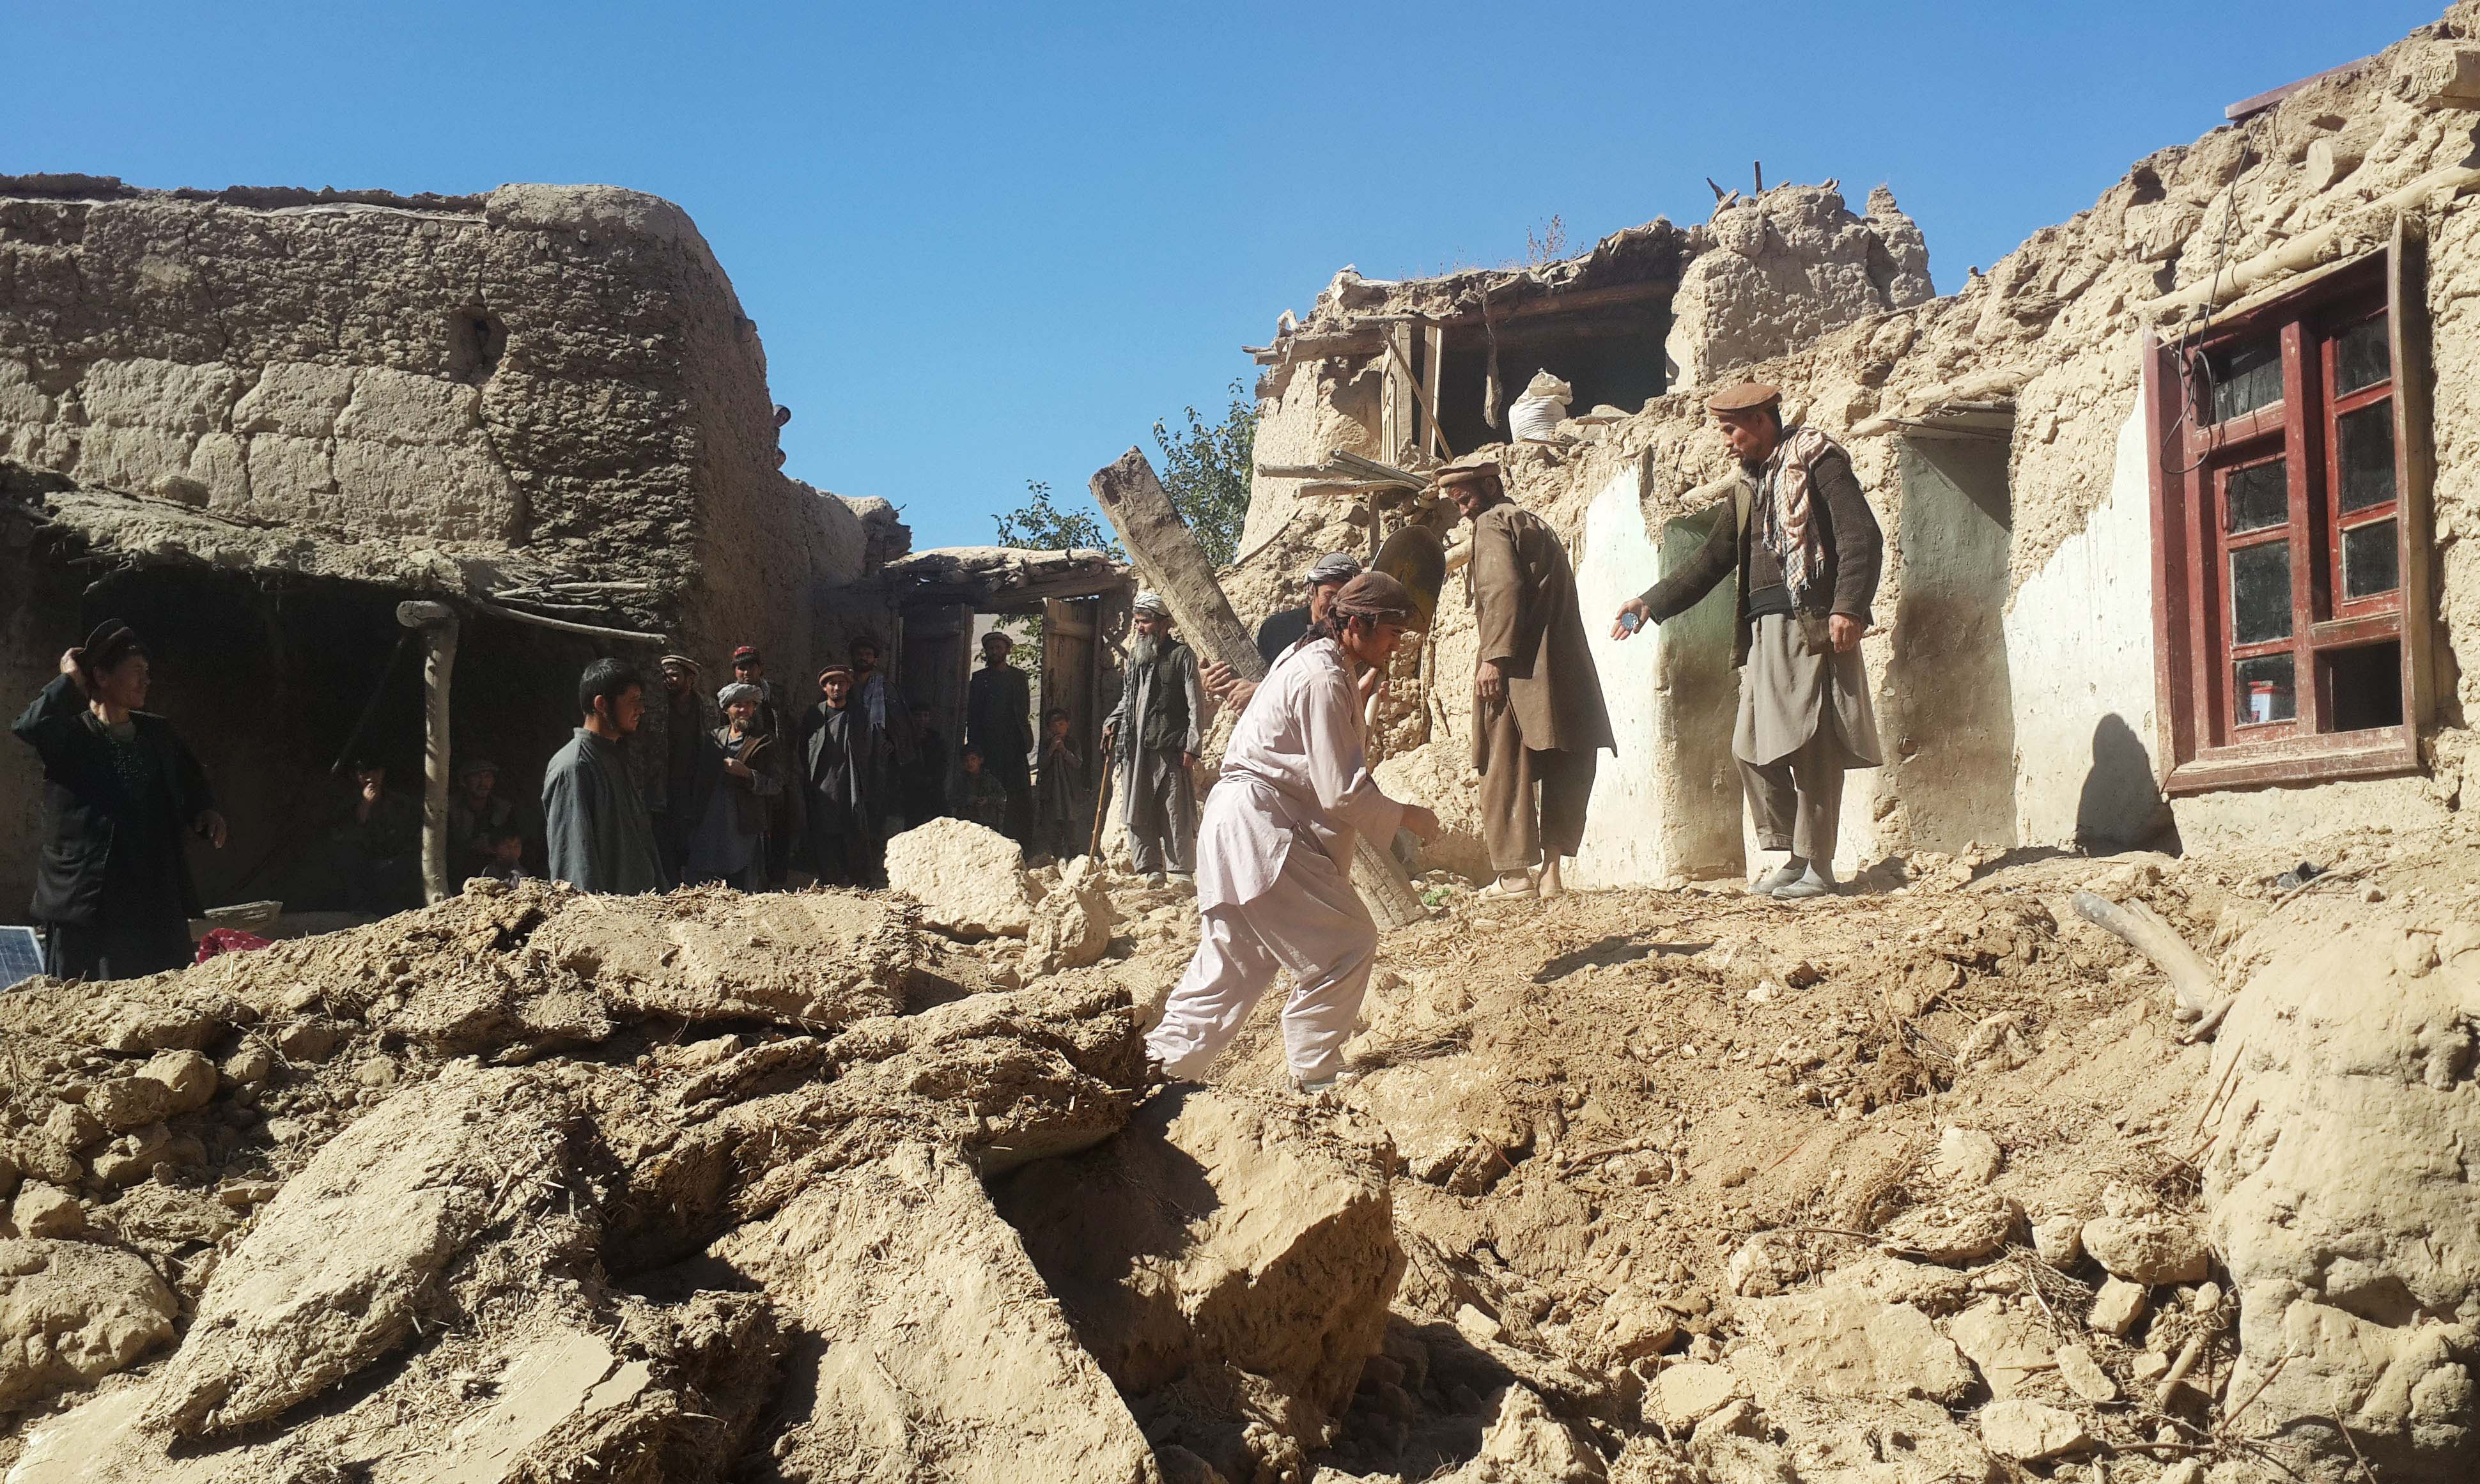 Afghan men carry their belongings after an earthquake in Takhar province, northeast of Kabul, Afghanistan, Tuesday, Oct. 27, 2015. Rescuers were struggling to reach quake-stricken regions in Pakistan and Afghanistan on Tuesday as officials said the combined death toll from the previous day's earthquake rose to more than 300.(AP Photo/Zalmai Ashna)